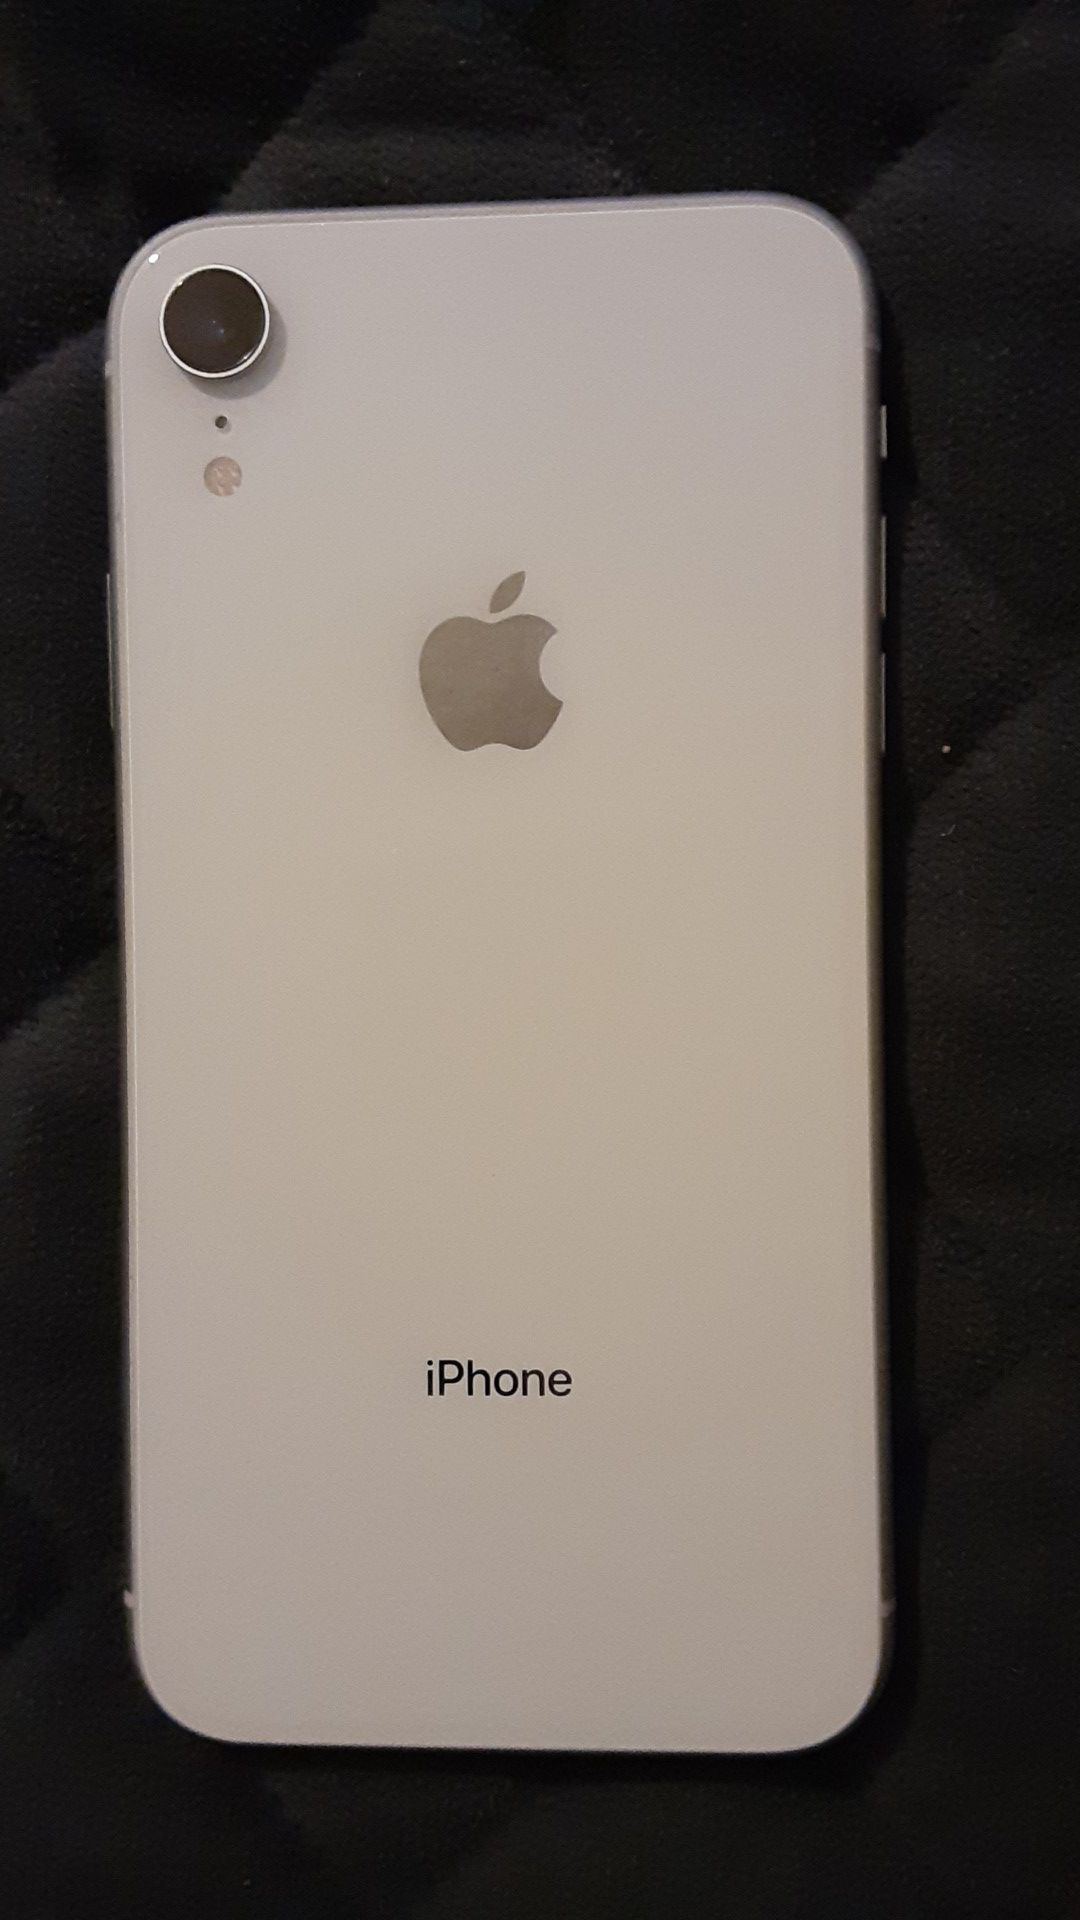 iPhone xr brand new t-mobile white in color 64gb